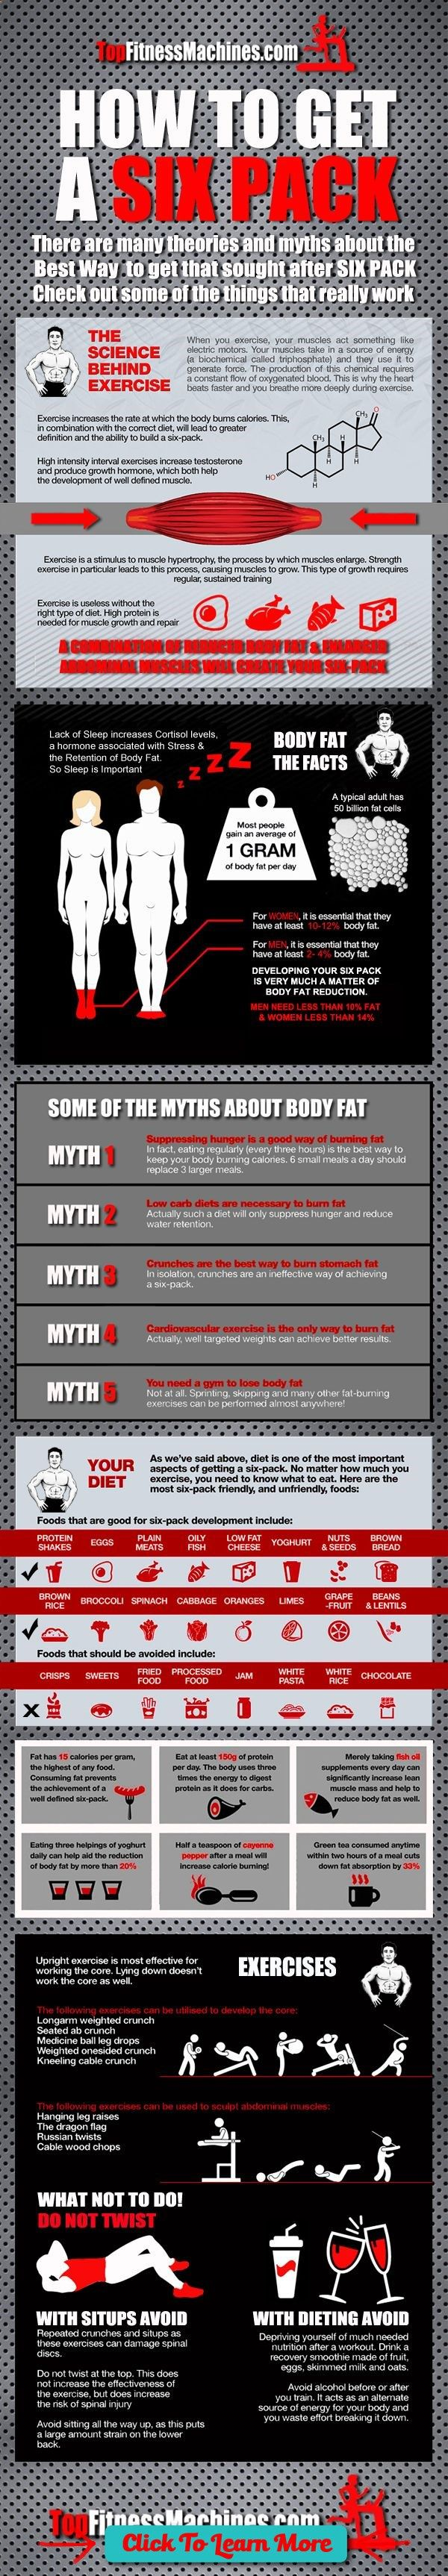 #FastestWayToLoseWeight by EATING, Click to learn more, See more here ► www.youtube.com/... Tags: how to loss weight without exercise, weight loss tips without exercise, weight loss diet without exercise - How to Build Your Abs & Get a Six Pack. Infographic with Tips and Dispelling some Myths www.TopFitnessMac... #six_pack #fitness #Abs_Training , #HealthyRecipes, #FitnessRecipes, #BurnFatRecipes, #WeightLossRecipes, #WeightLossDiets